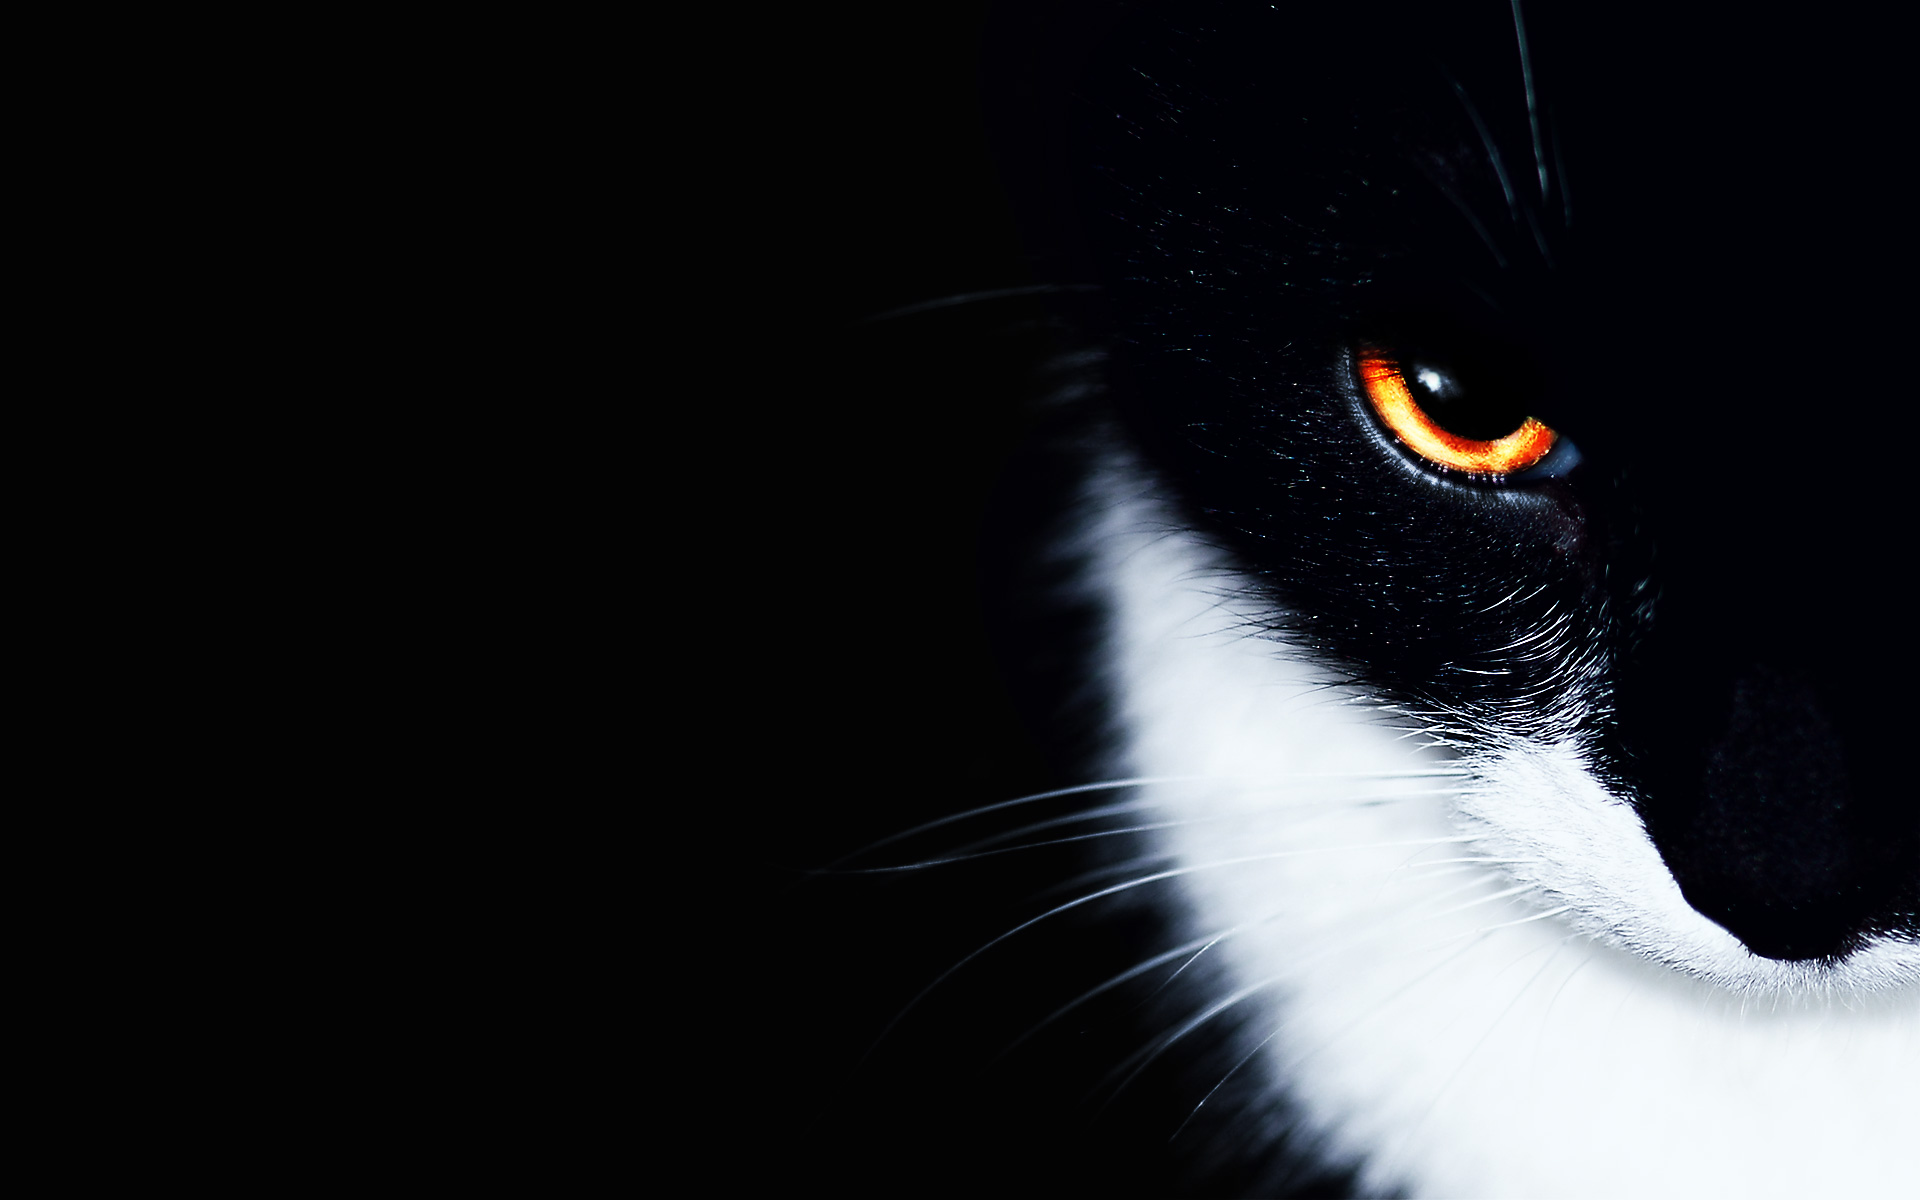 Cats Animals Wallpaper 1920x1200 Cats, Animals, Orange, Eyes 1846